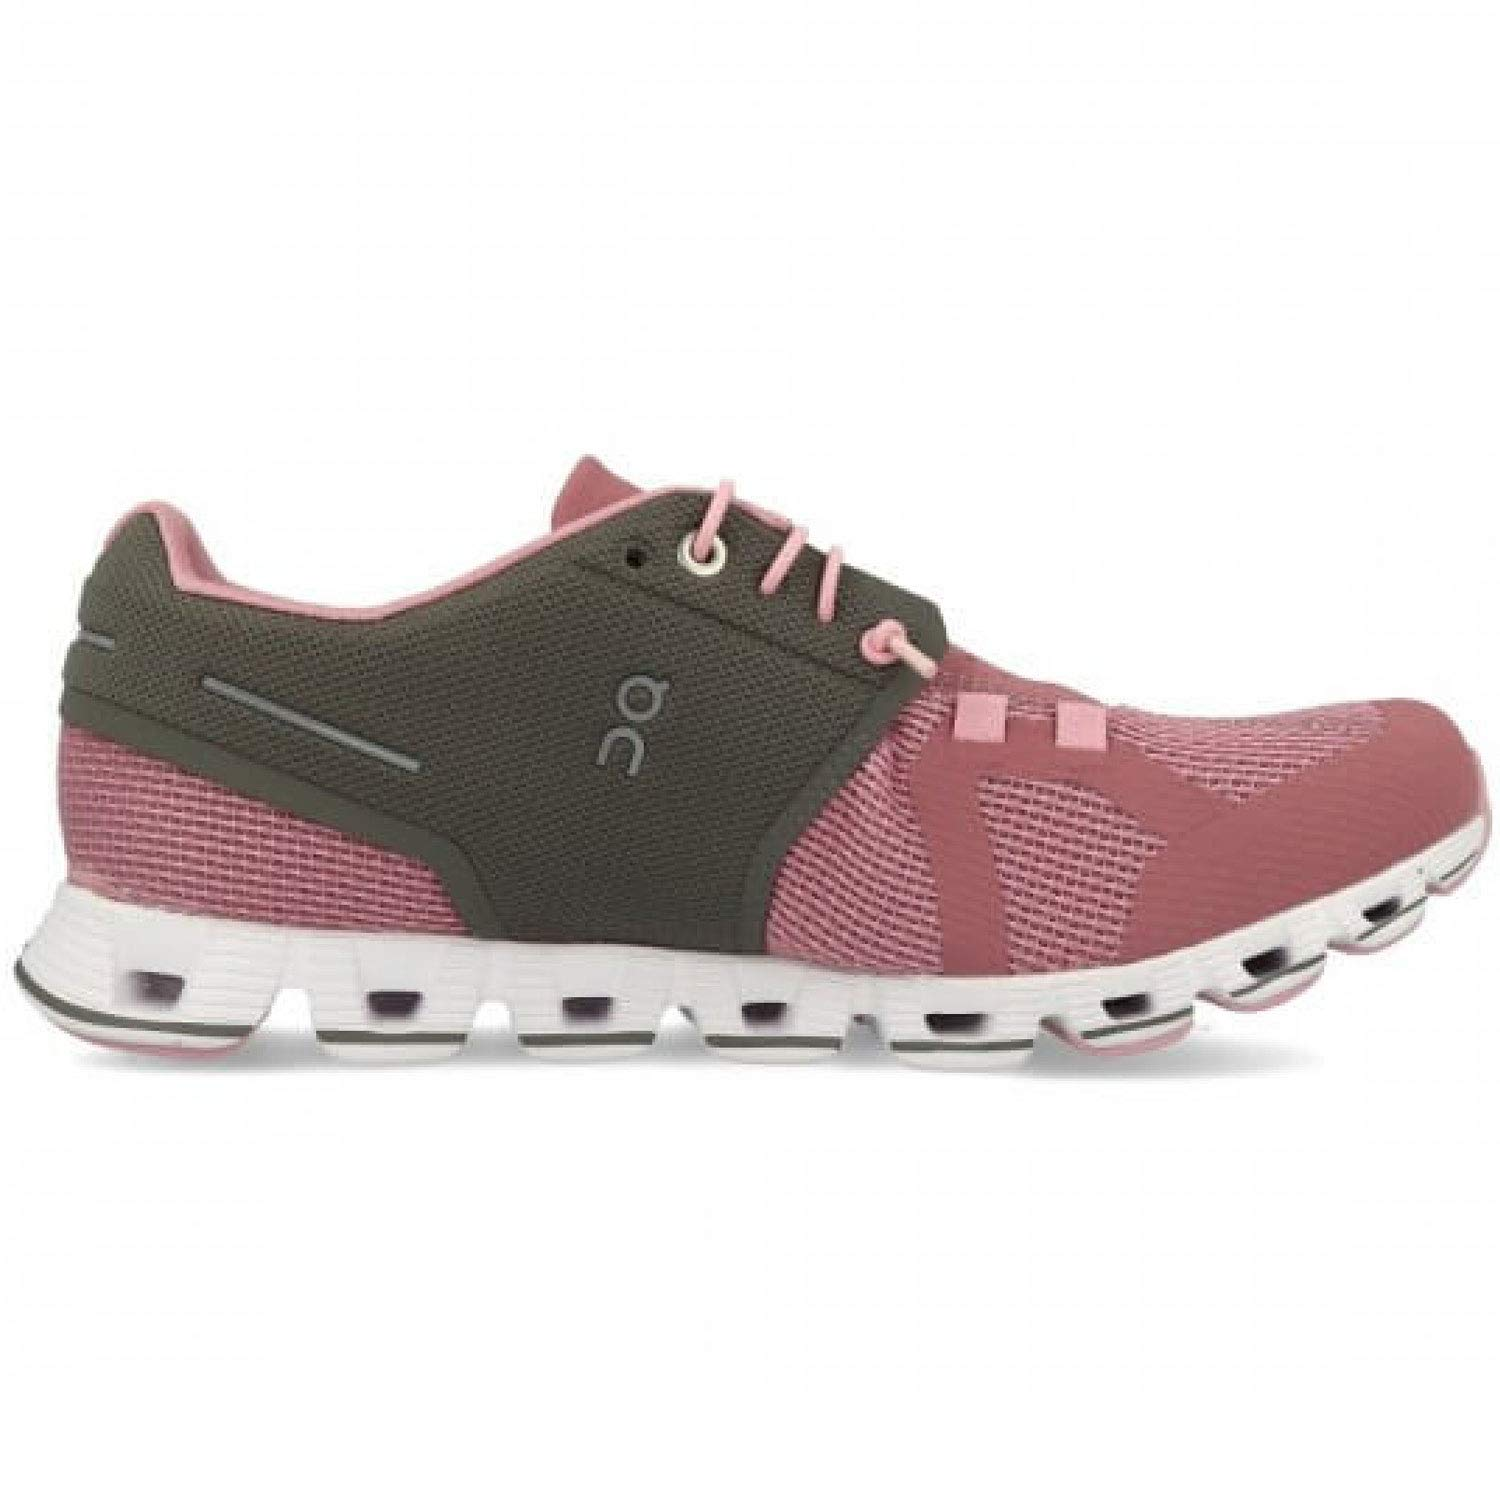 Buy On Running Womens Cloud Road Shoes